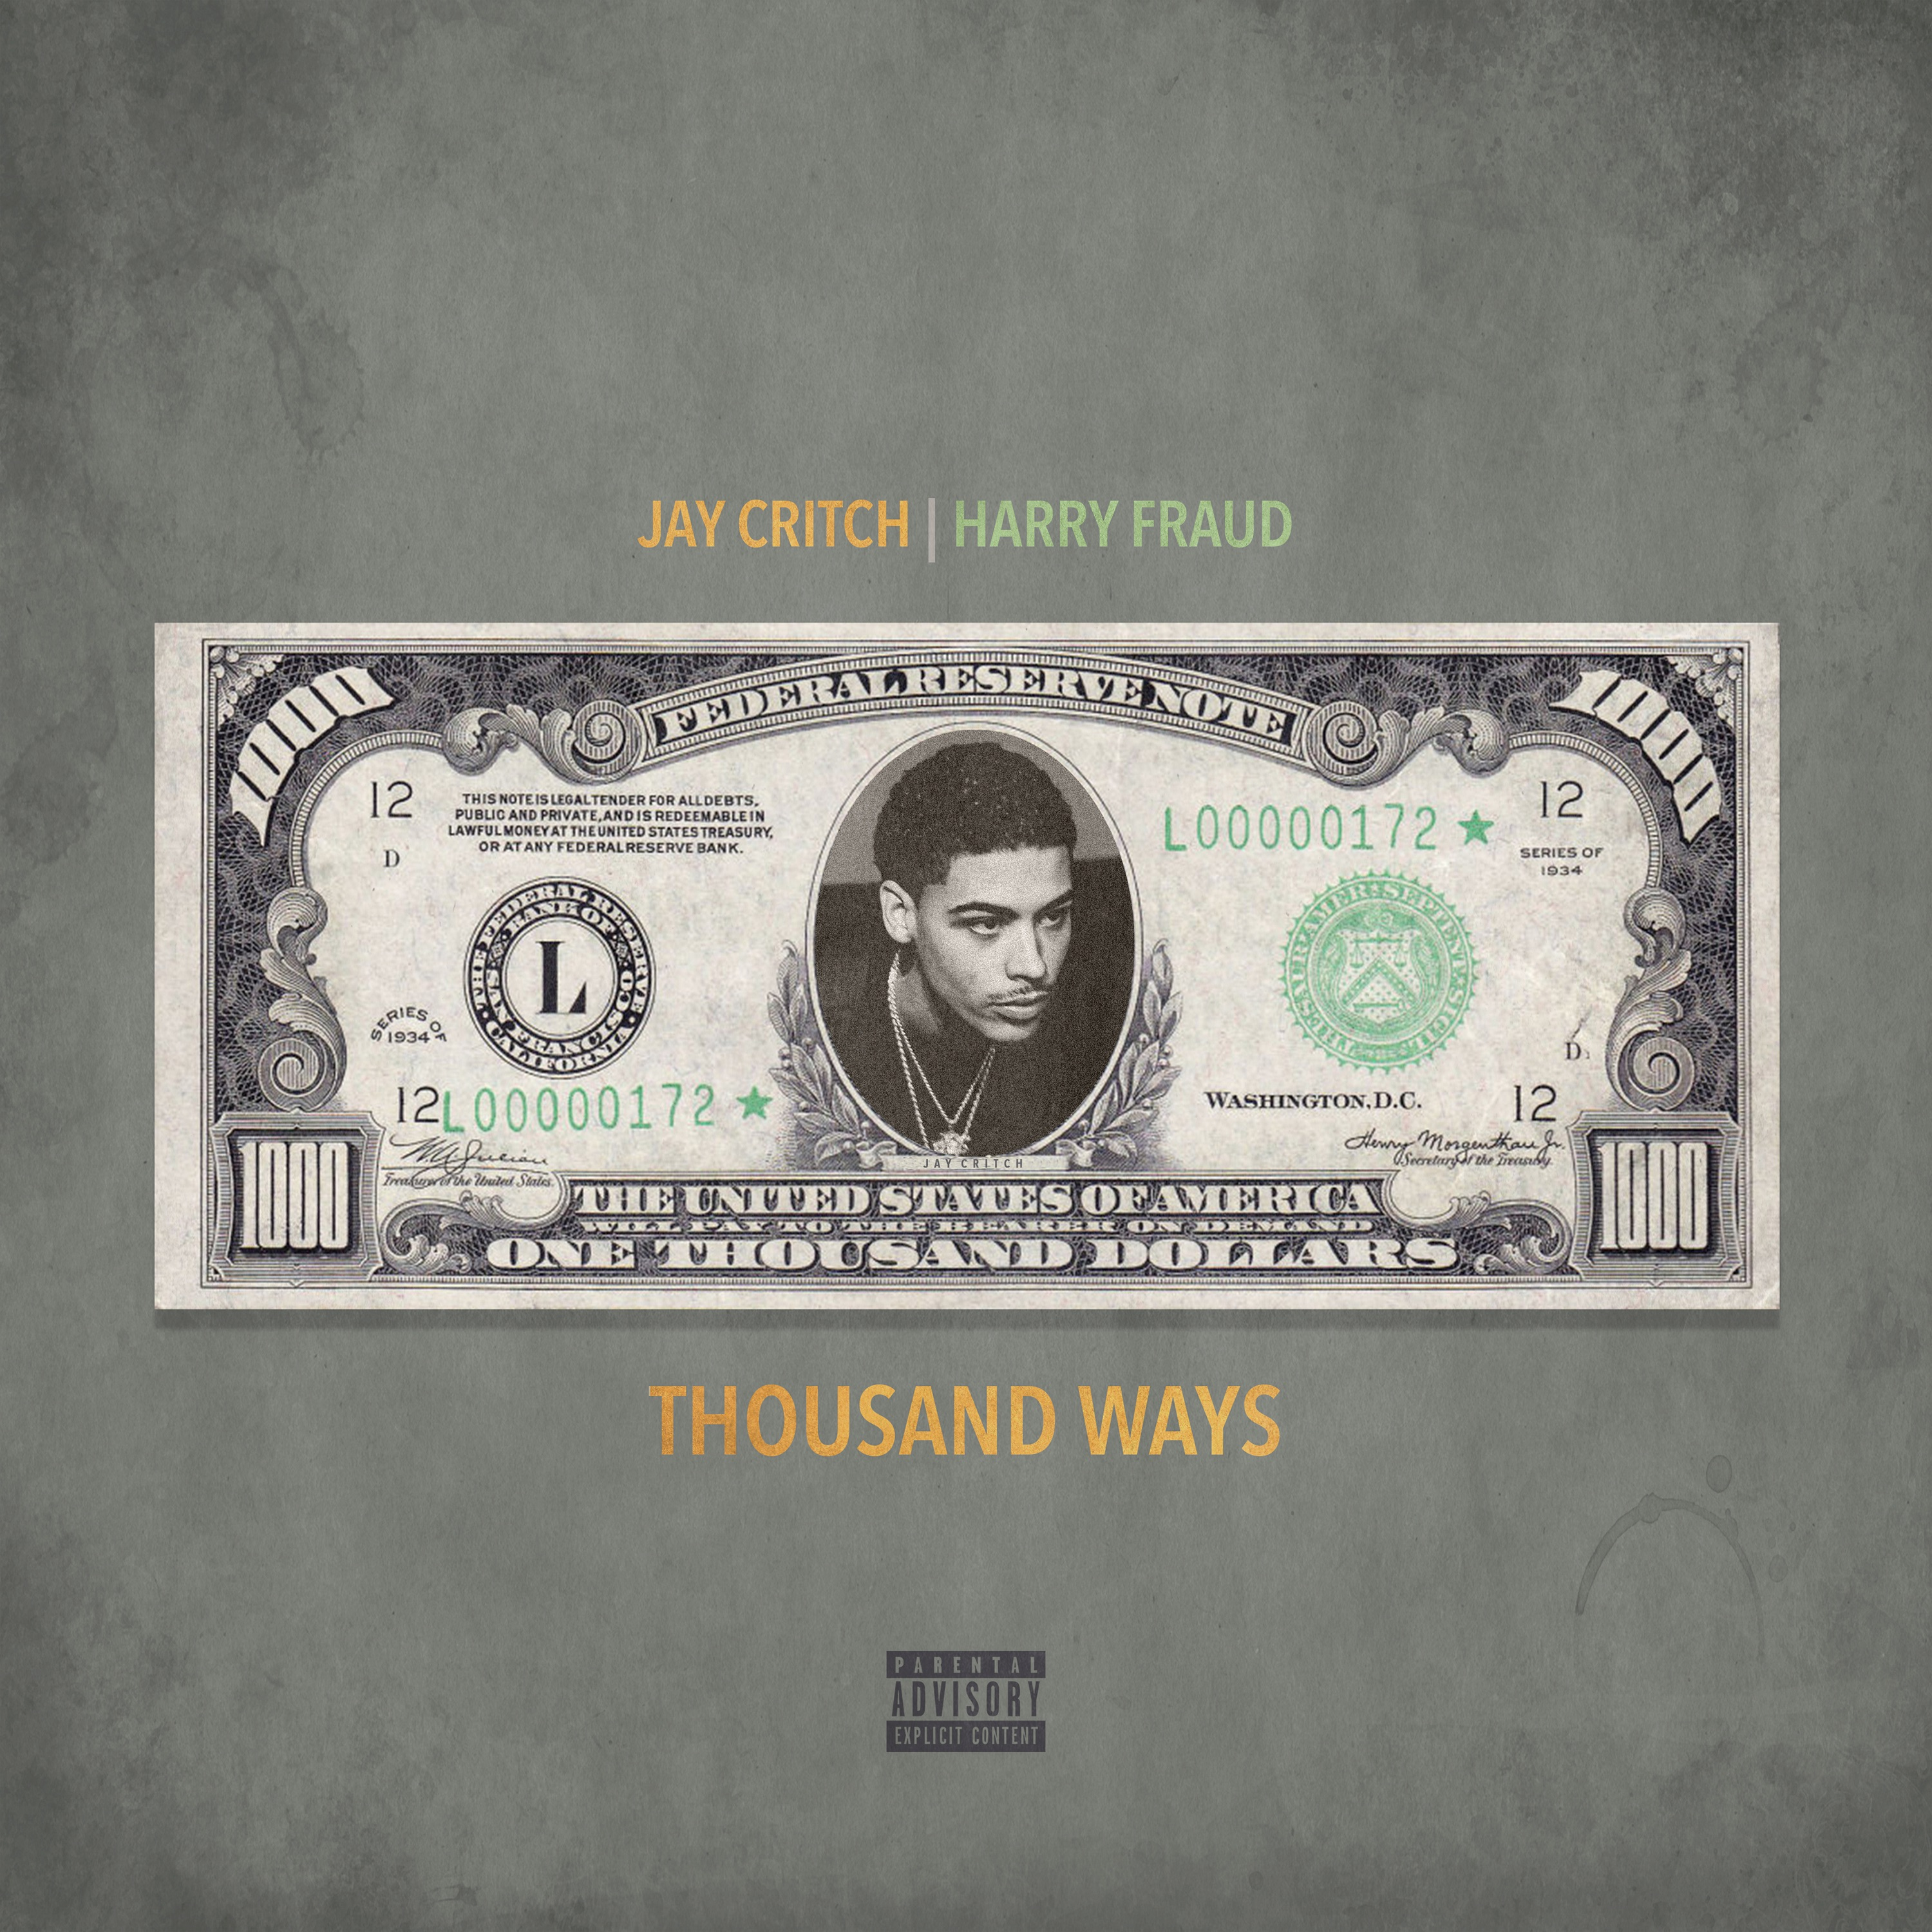 Thousand Ways by Jay Critch, Harry Fraud